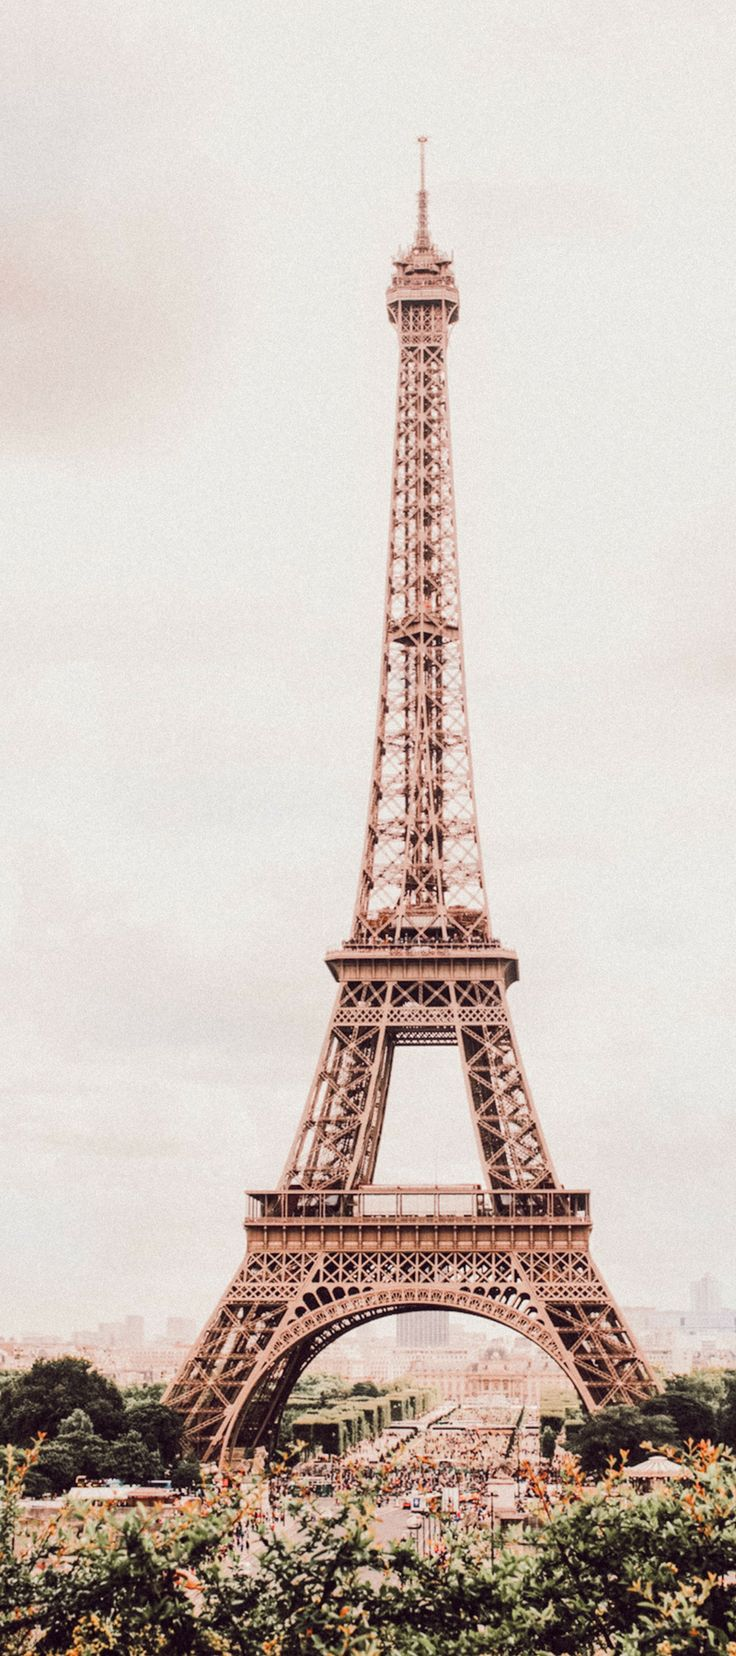 10 Things You Have to see Your First Time in Paris! Big shocker to see this one on here right? The Eiffel Tower is often shown as a symbol of Paris, France, and sometimes even Europe as a whole. These Paris travel tips will you help as you as you explore the history, culture, food and top places to visit in Paris, France. Avenlylanetravel.com | #paris #france #europe #travel #photography #avenlylanetravel #eiffeltower